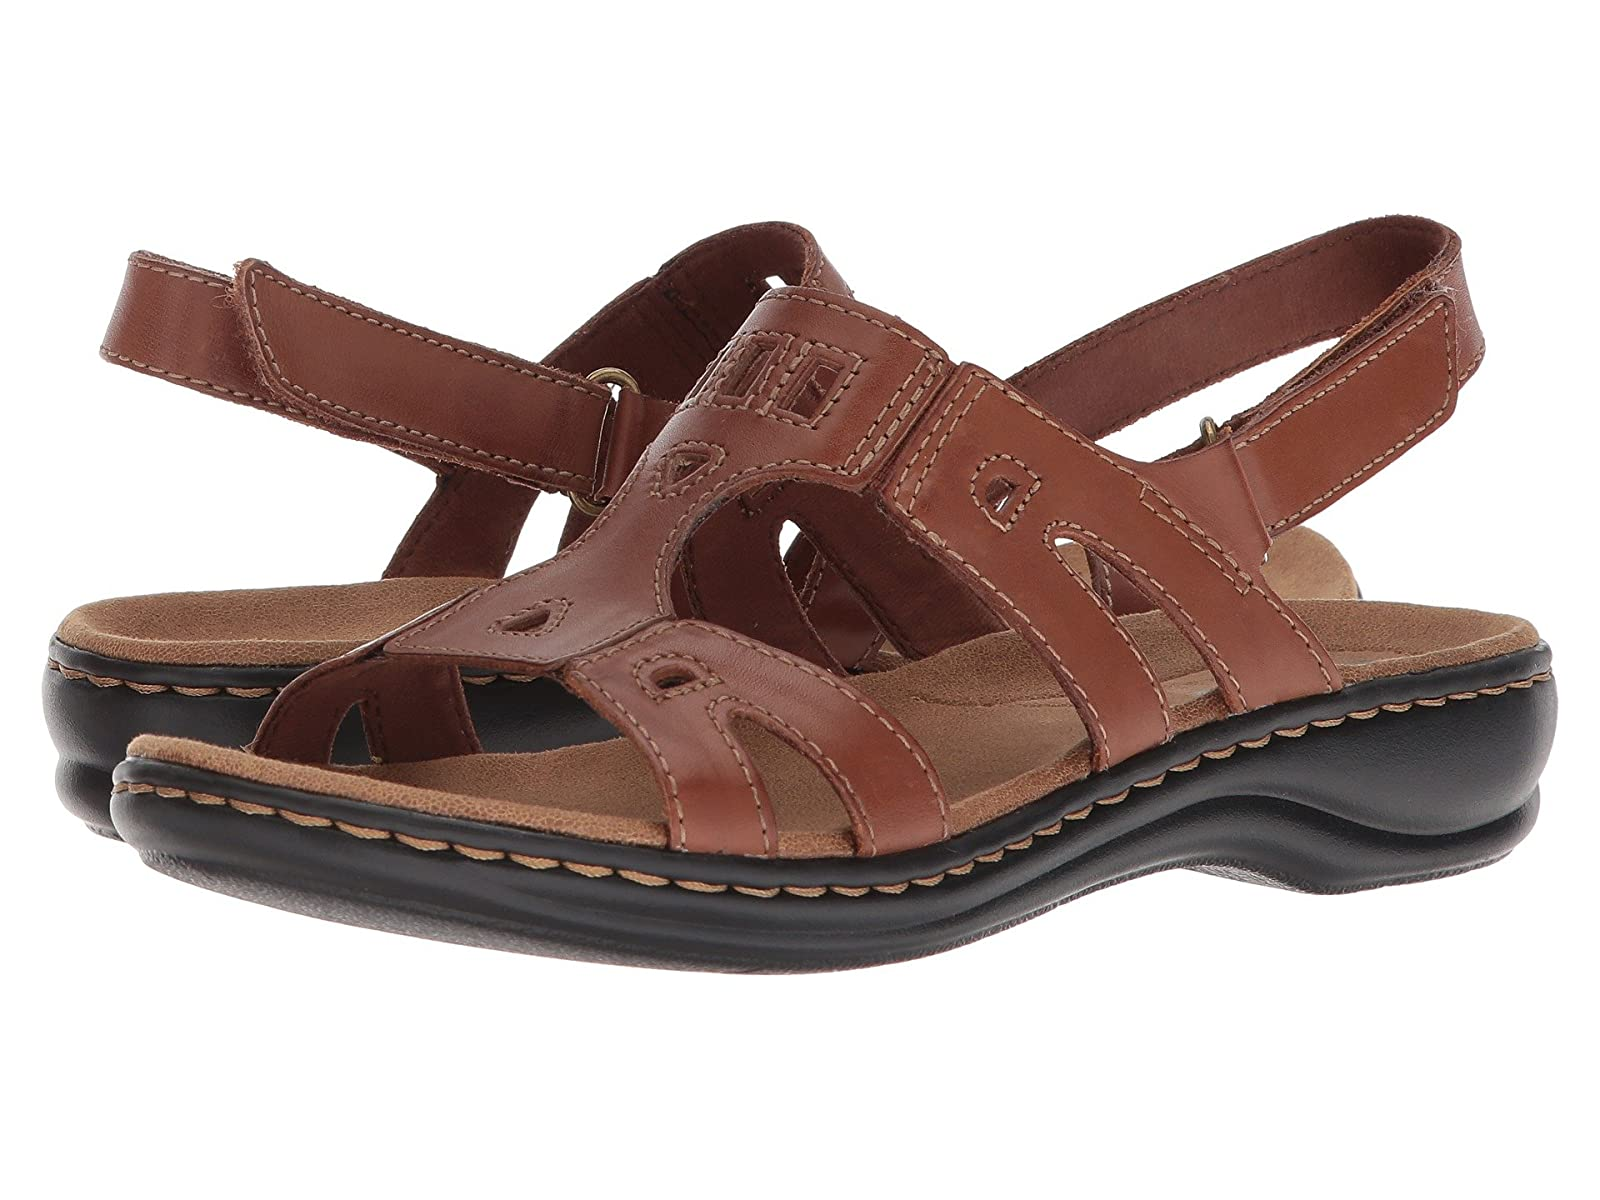 Clarks Leisa AnnualComfortable and distinctive shoes